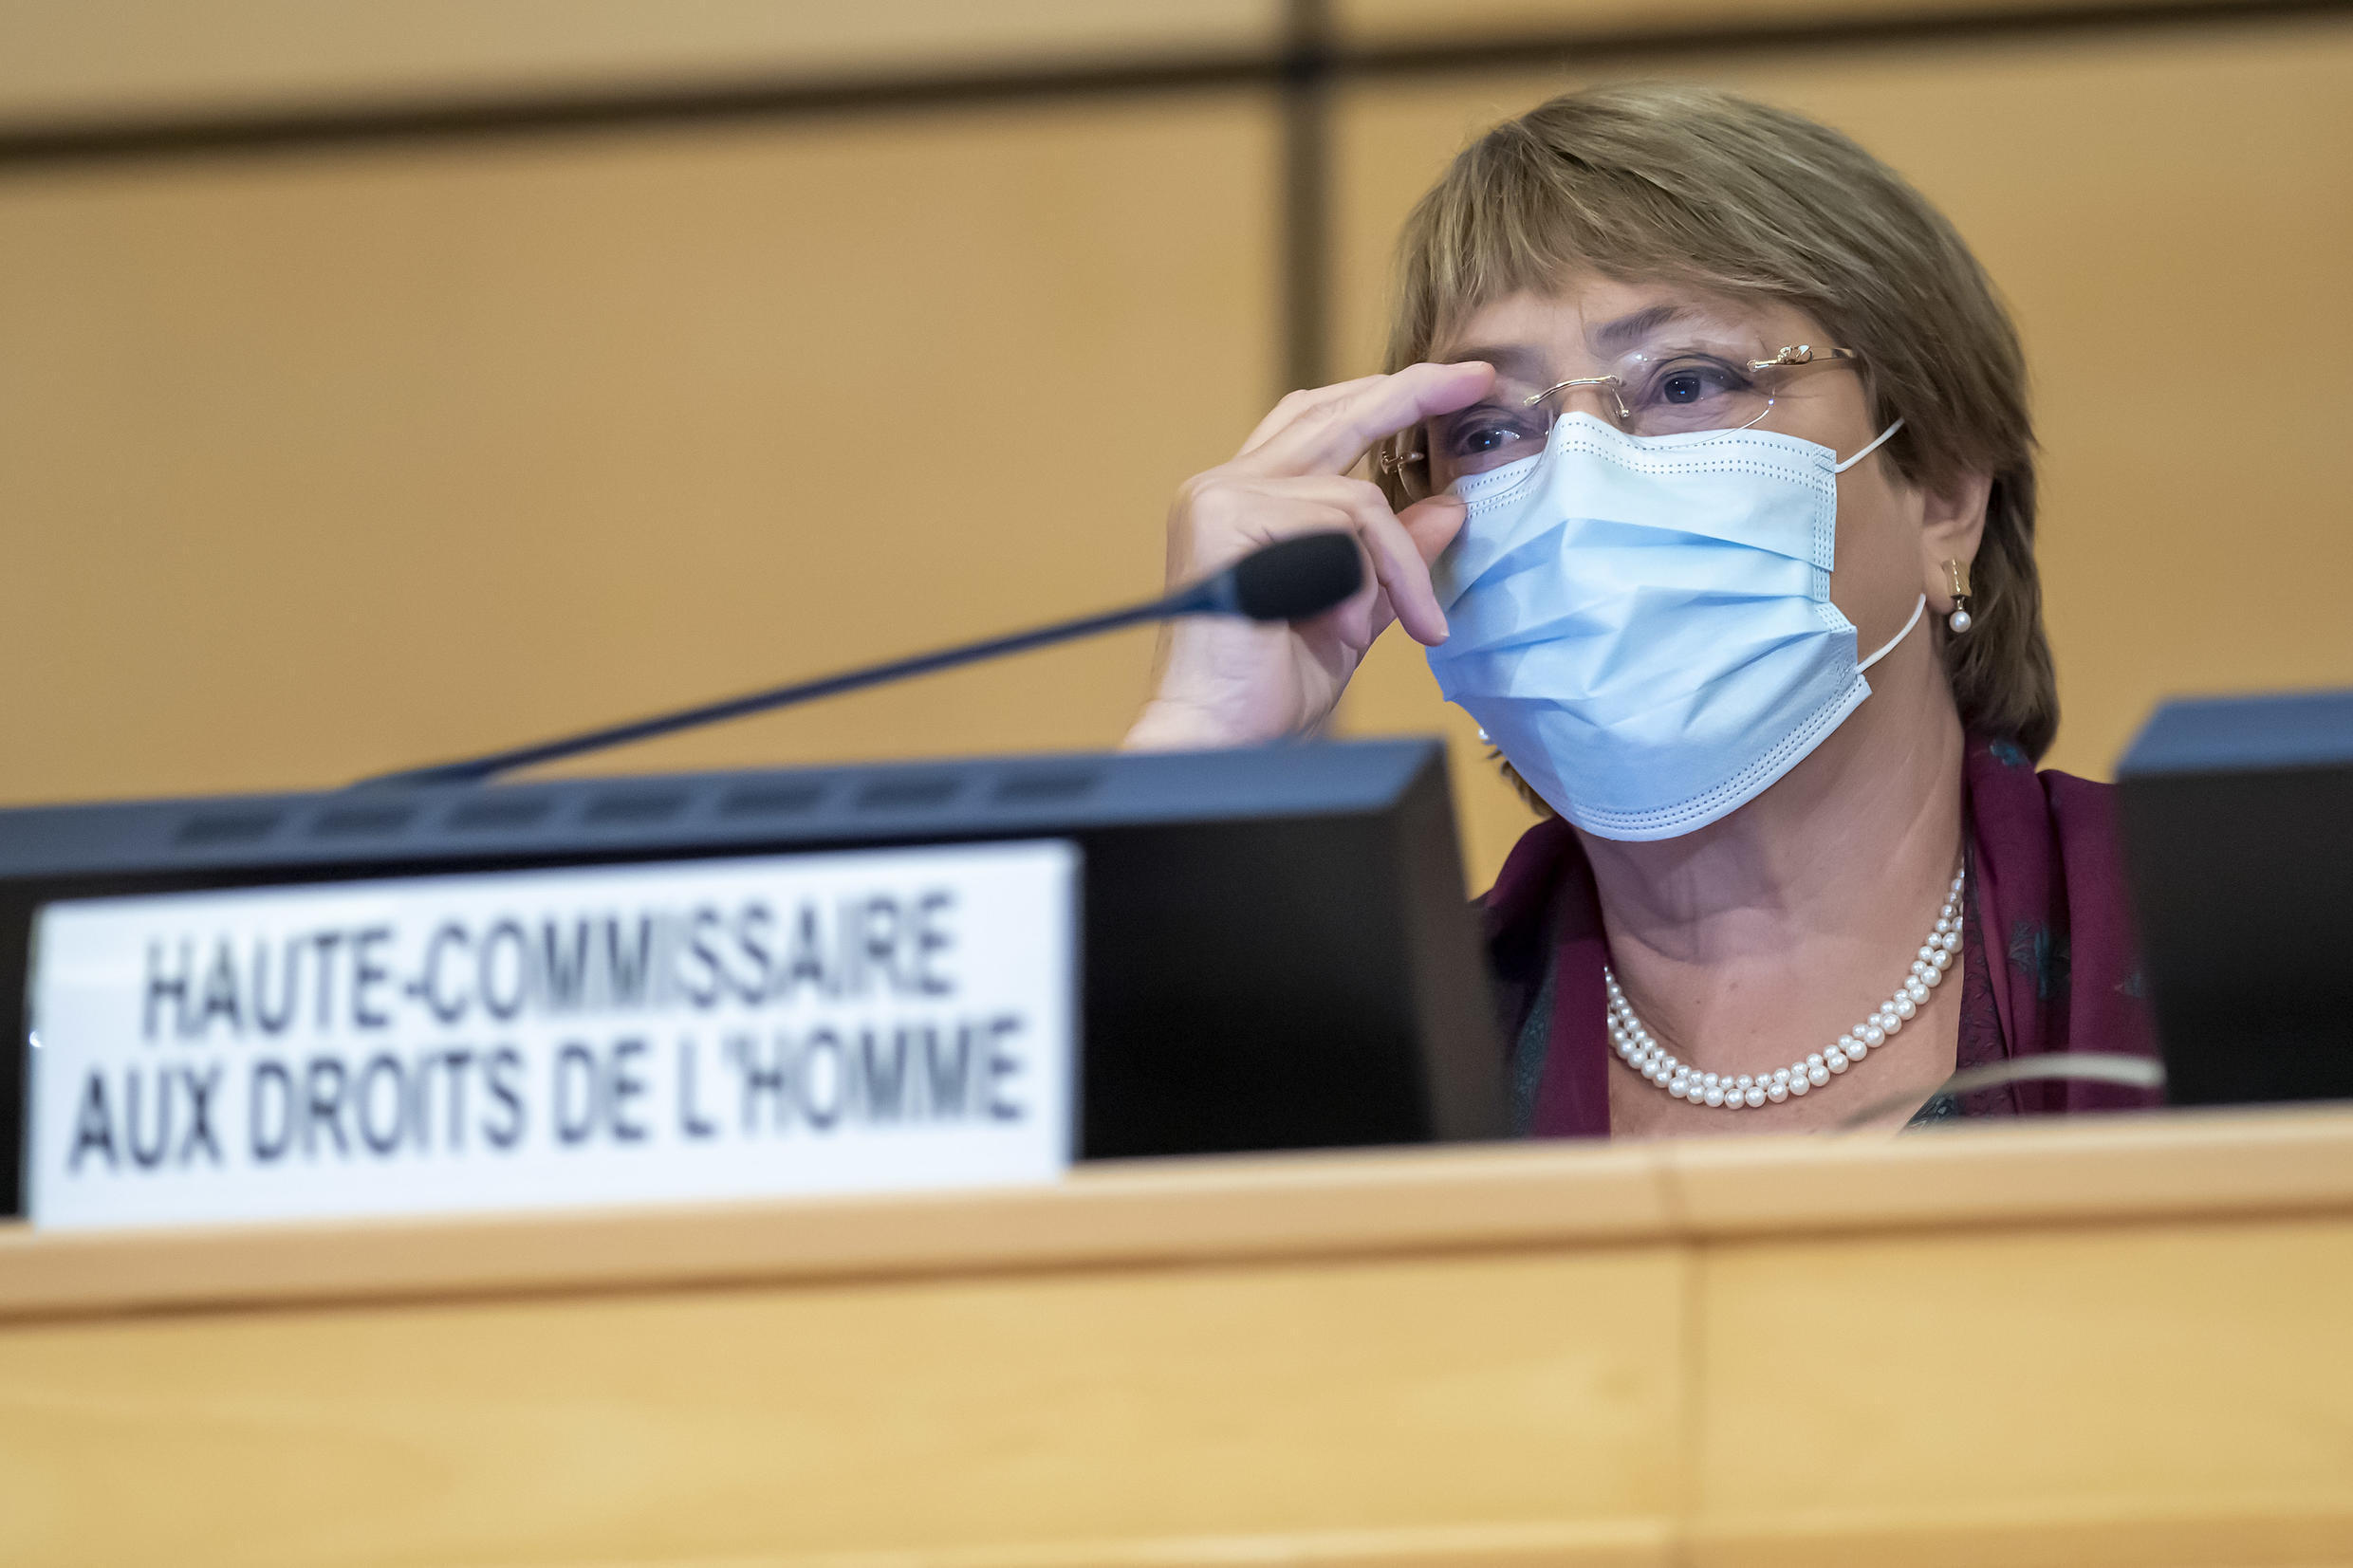 UN High Commissioner for Human Rights Michelle Bachelet, pictured in September 2020, has called on Iraqi authorities to halt any further executions